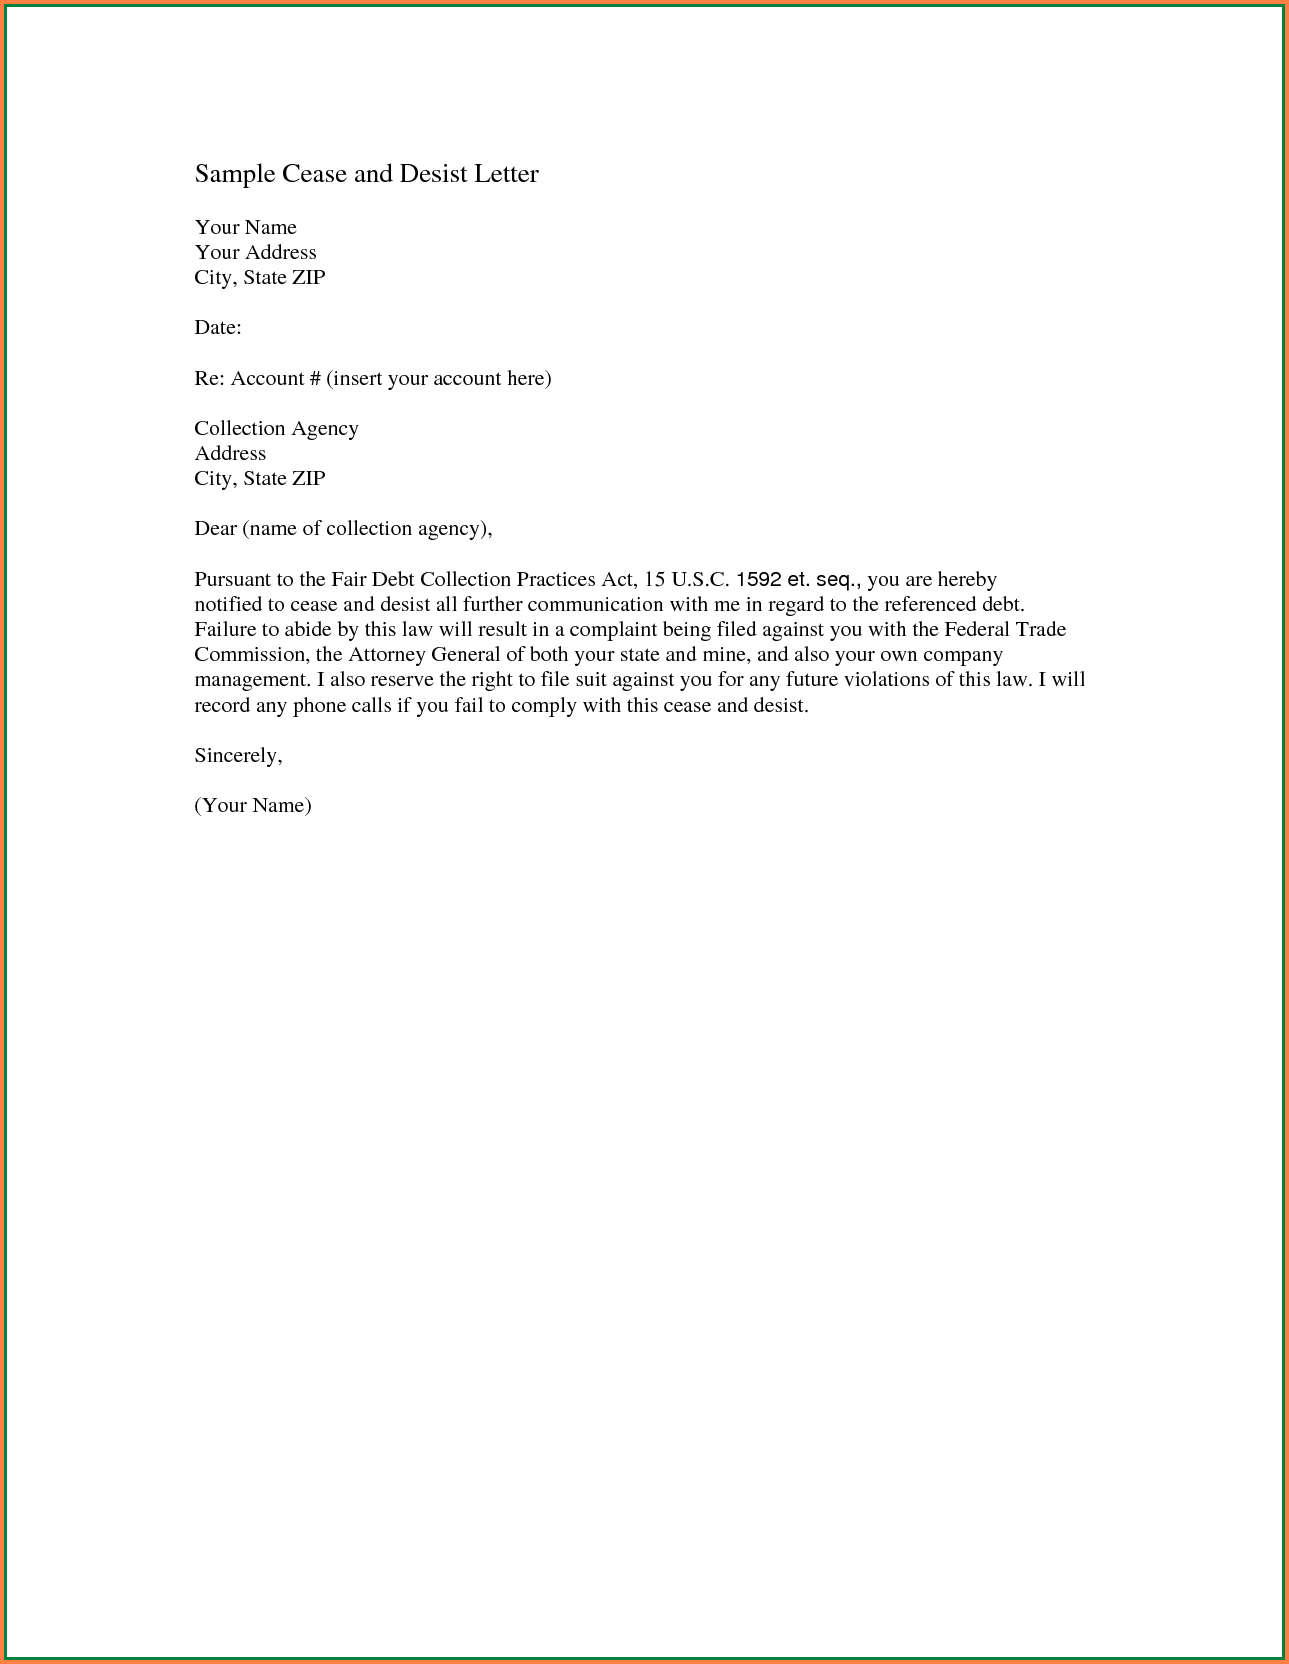 Cease and Desist Letter Template Amazon - 20 Best Debt Collection Letter Template Uk Free Graphics